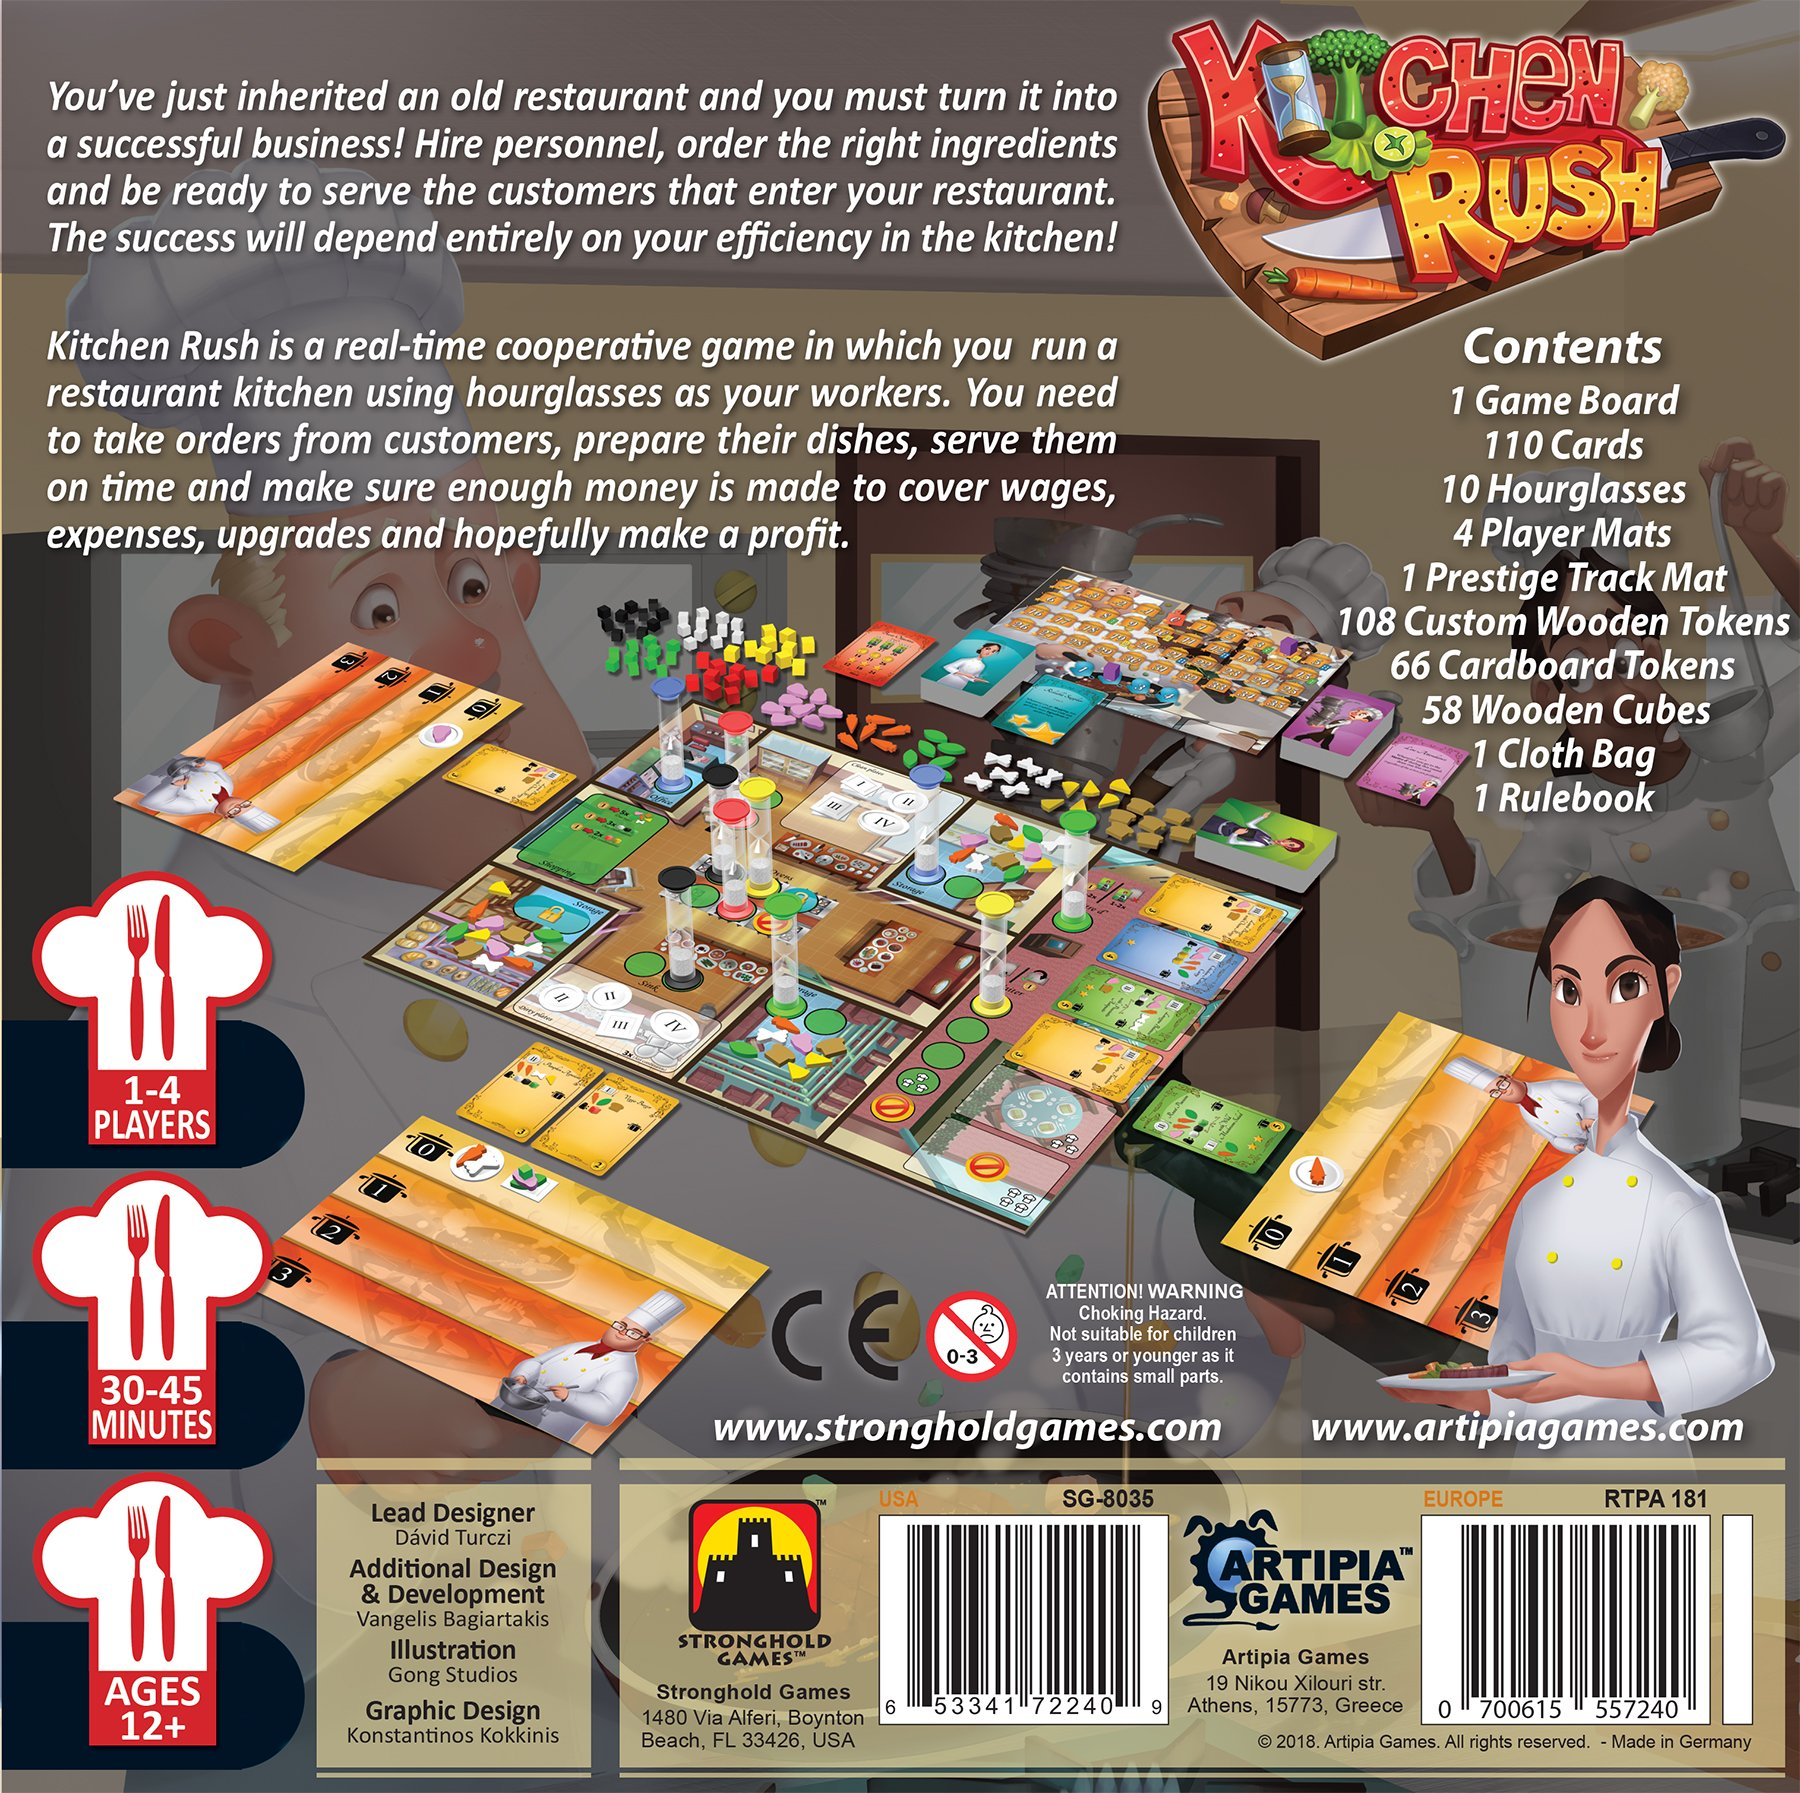 Image unavailable image not available for color kitchen rush game